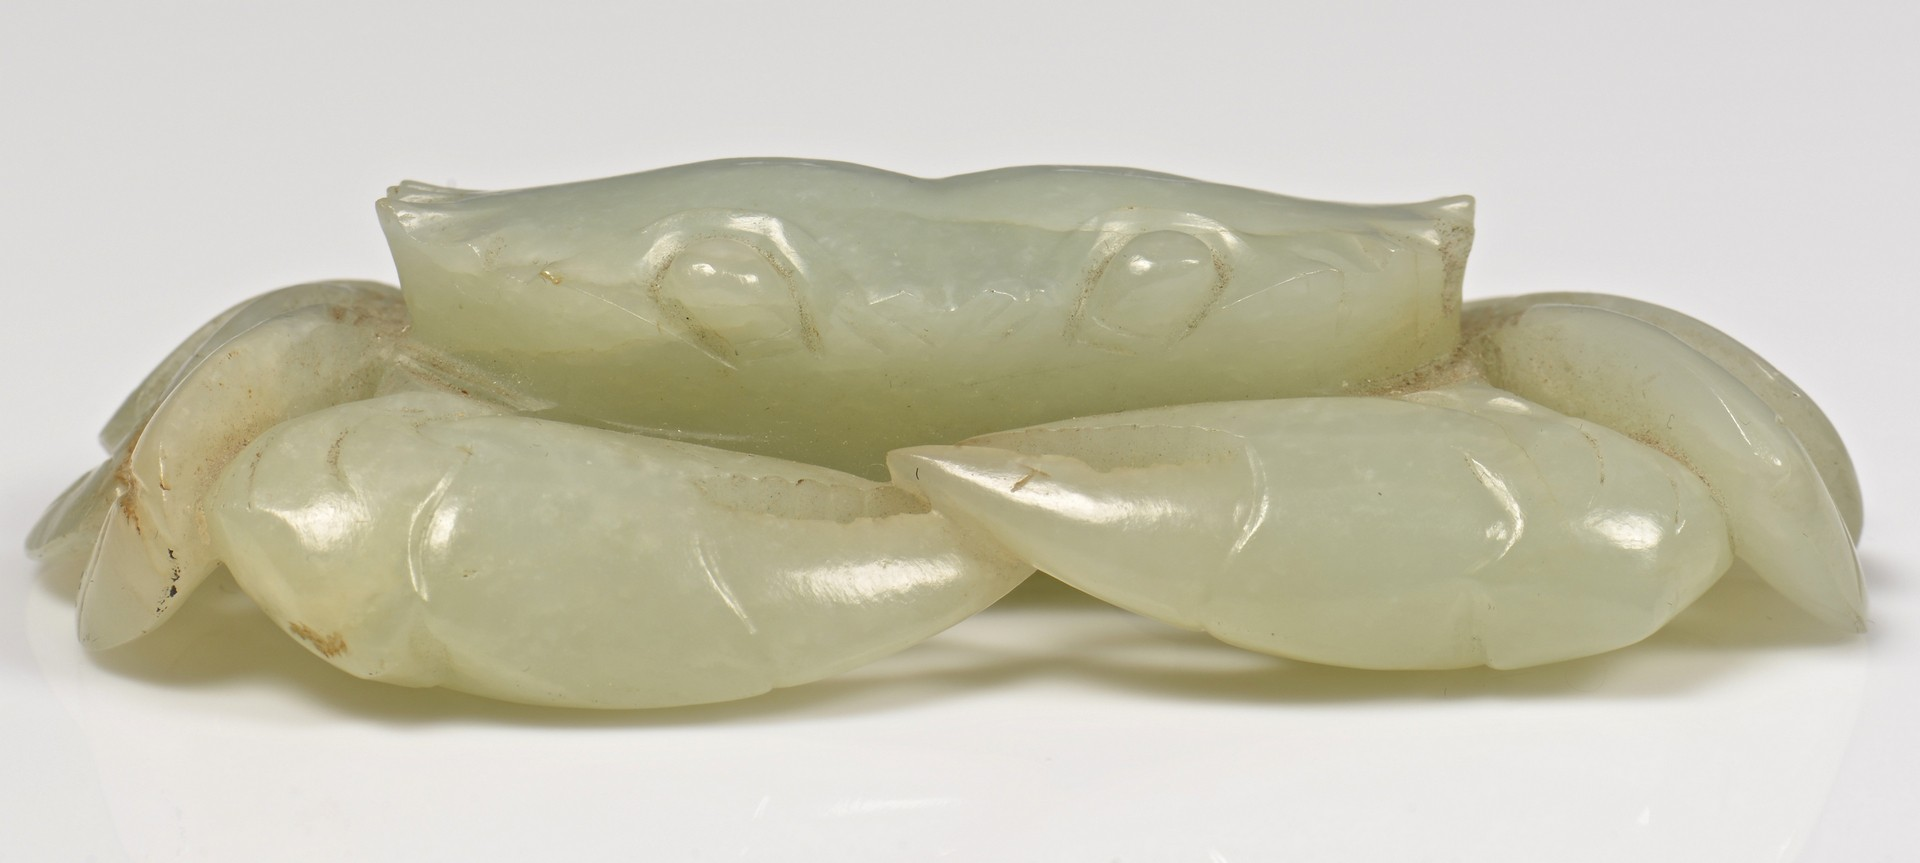 Lot 5: Carved Jade Crab